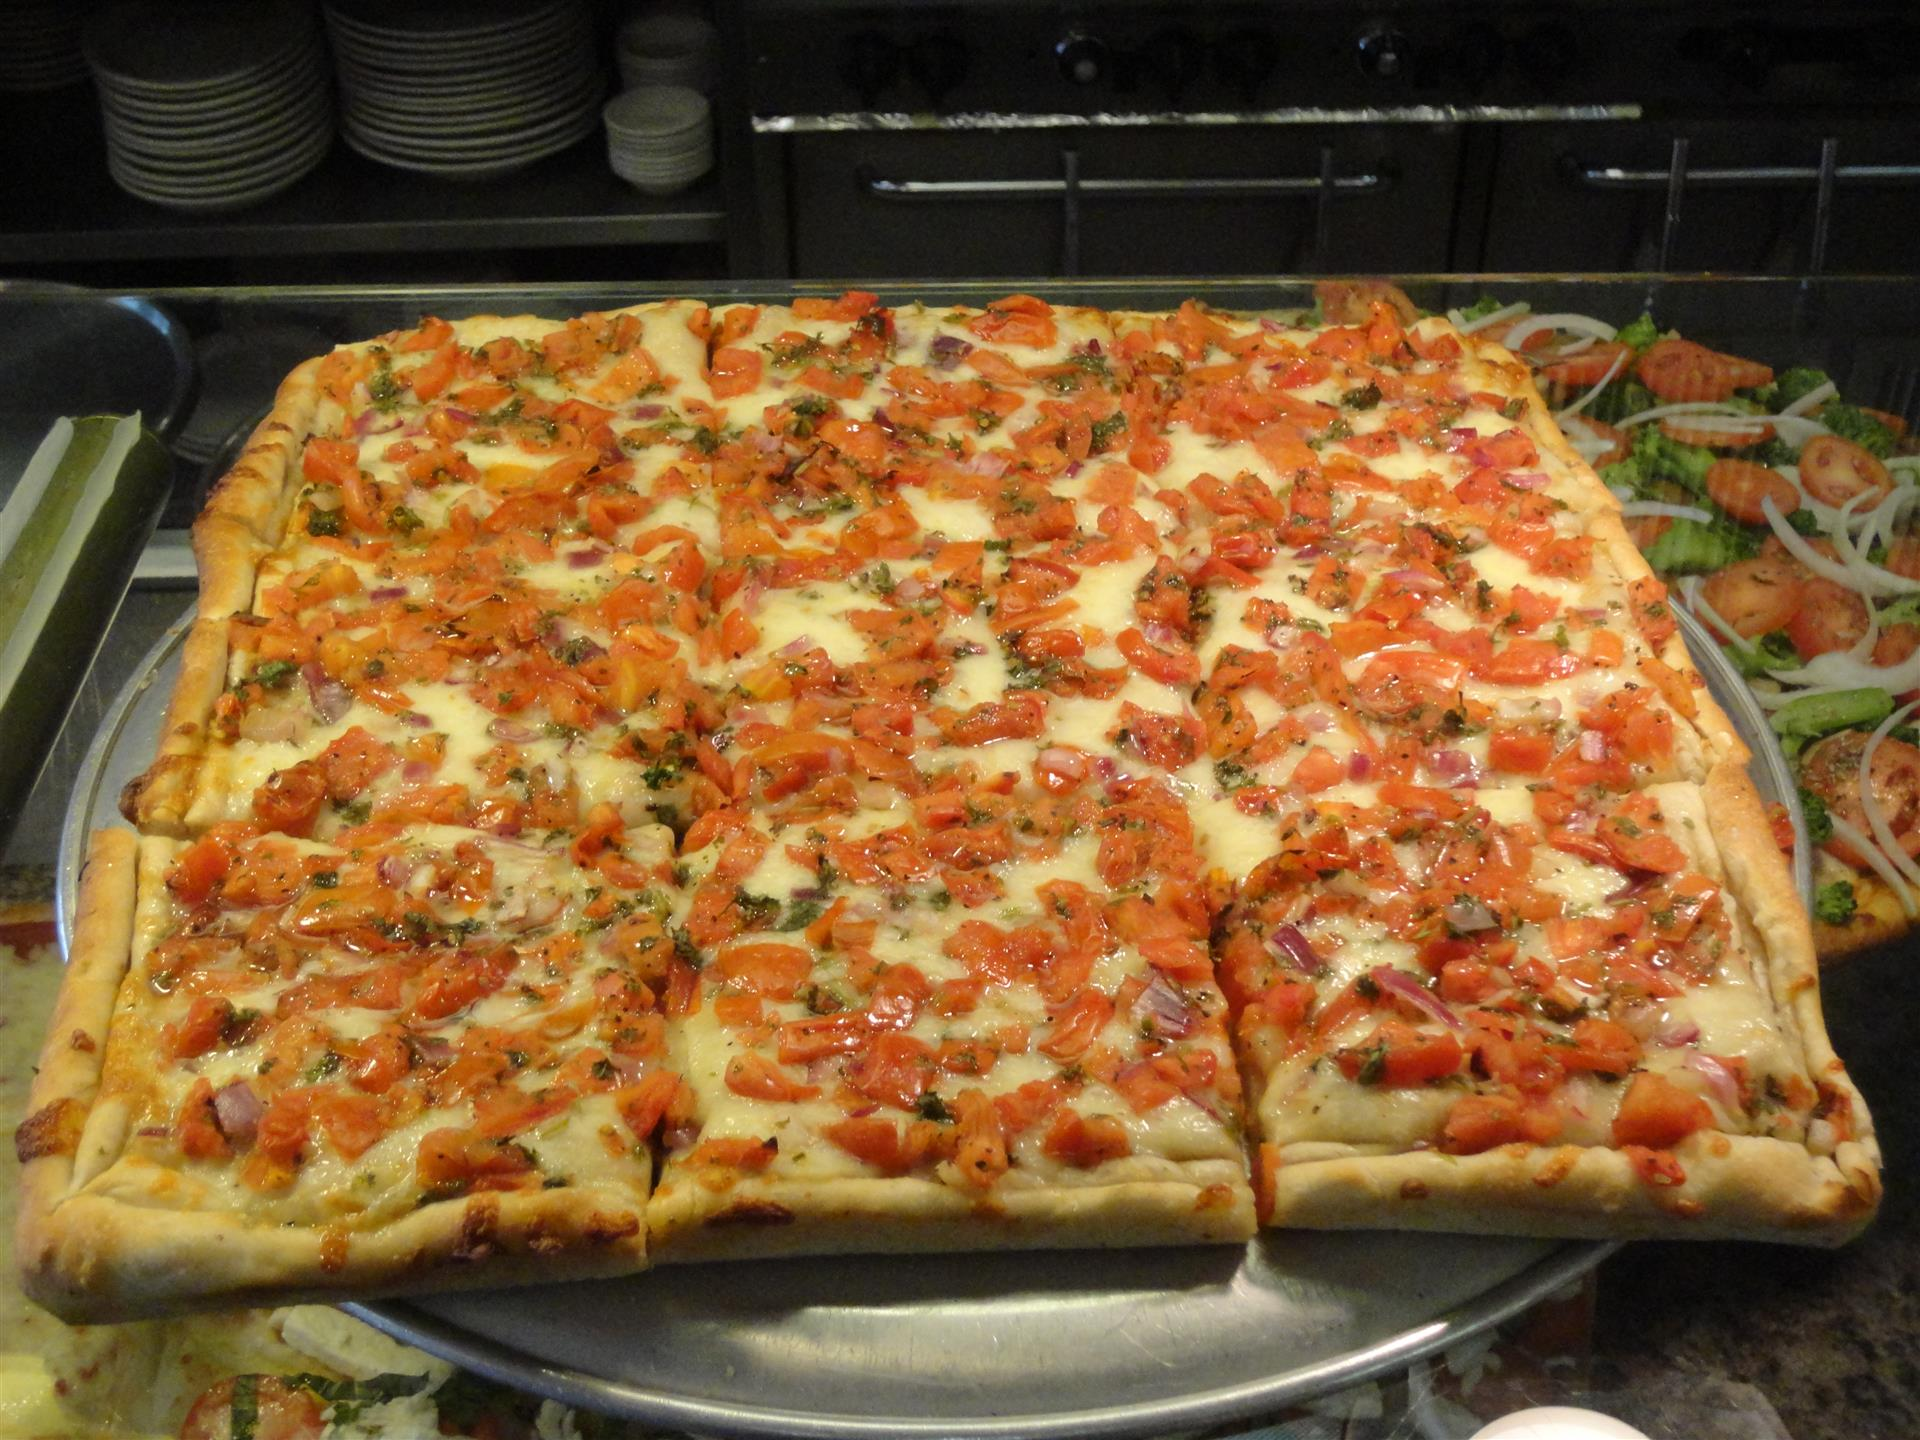 Sicilian pizza with toppings